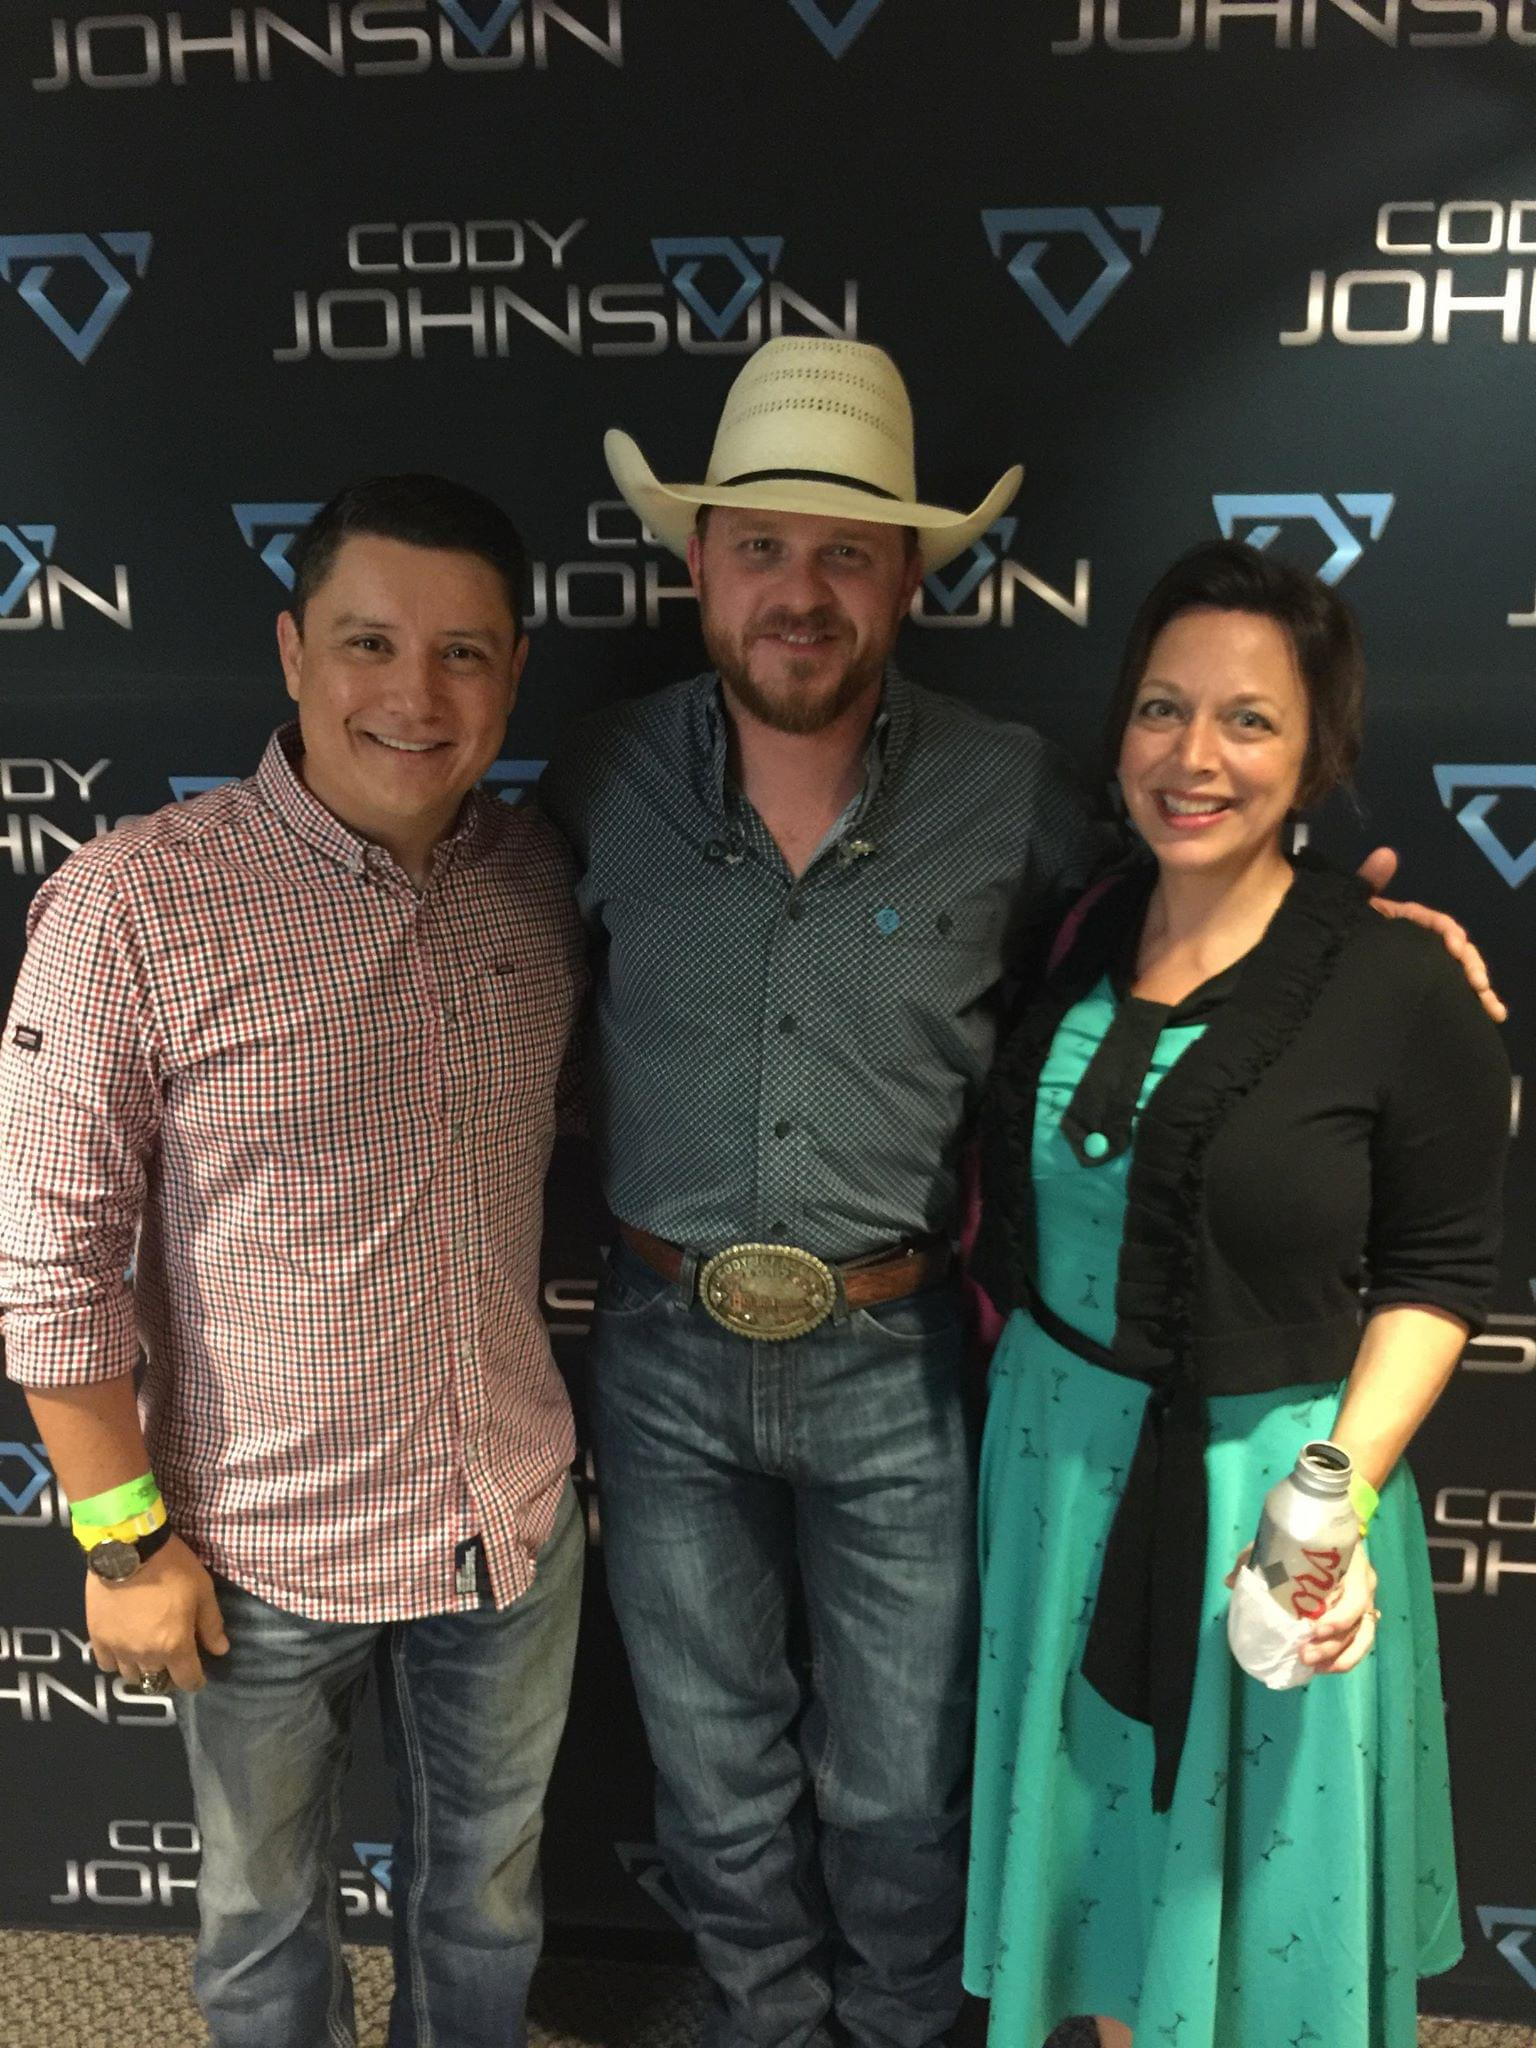 Check Out Our Pics From Cody Johnson's Wichita Falls Show!!